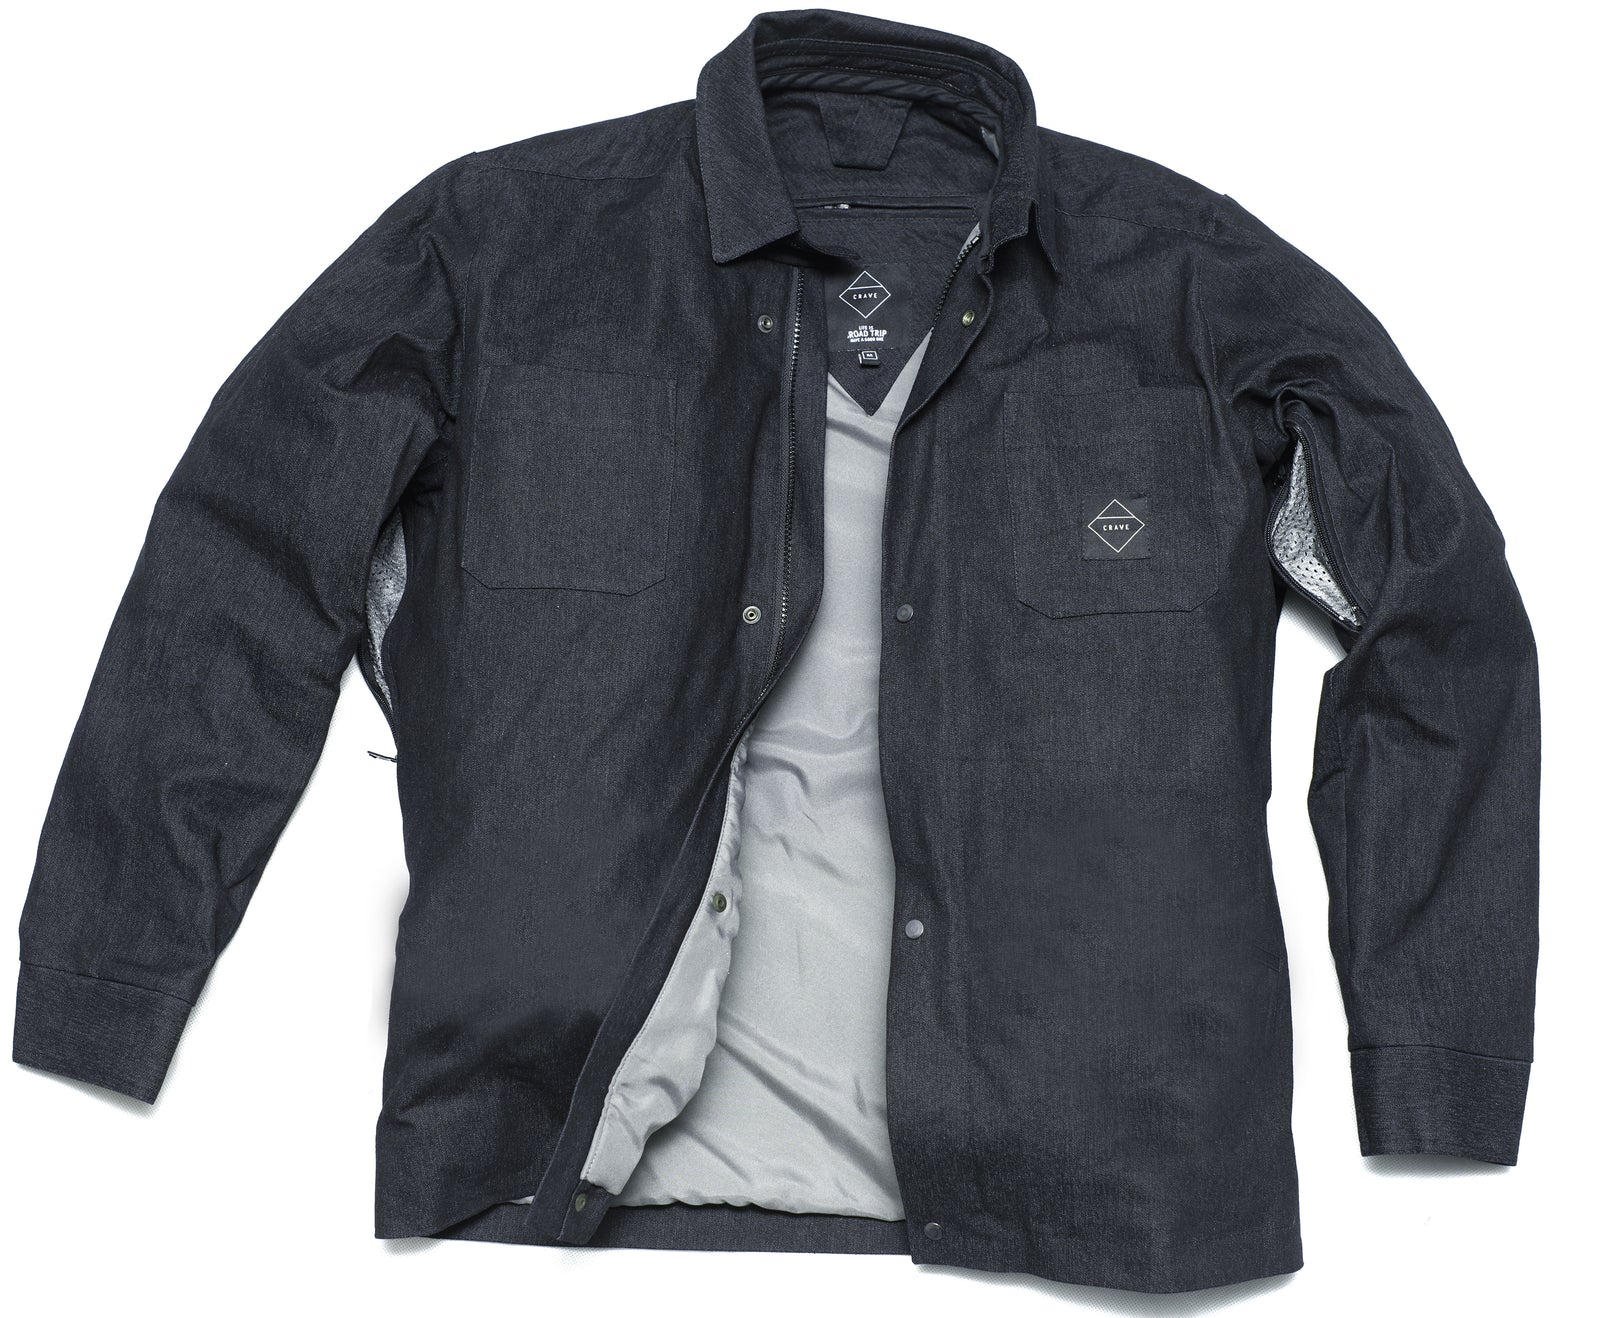 Crave Denim Kevlar lined Riding Shirt